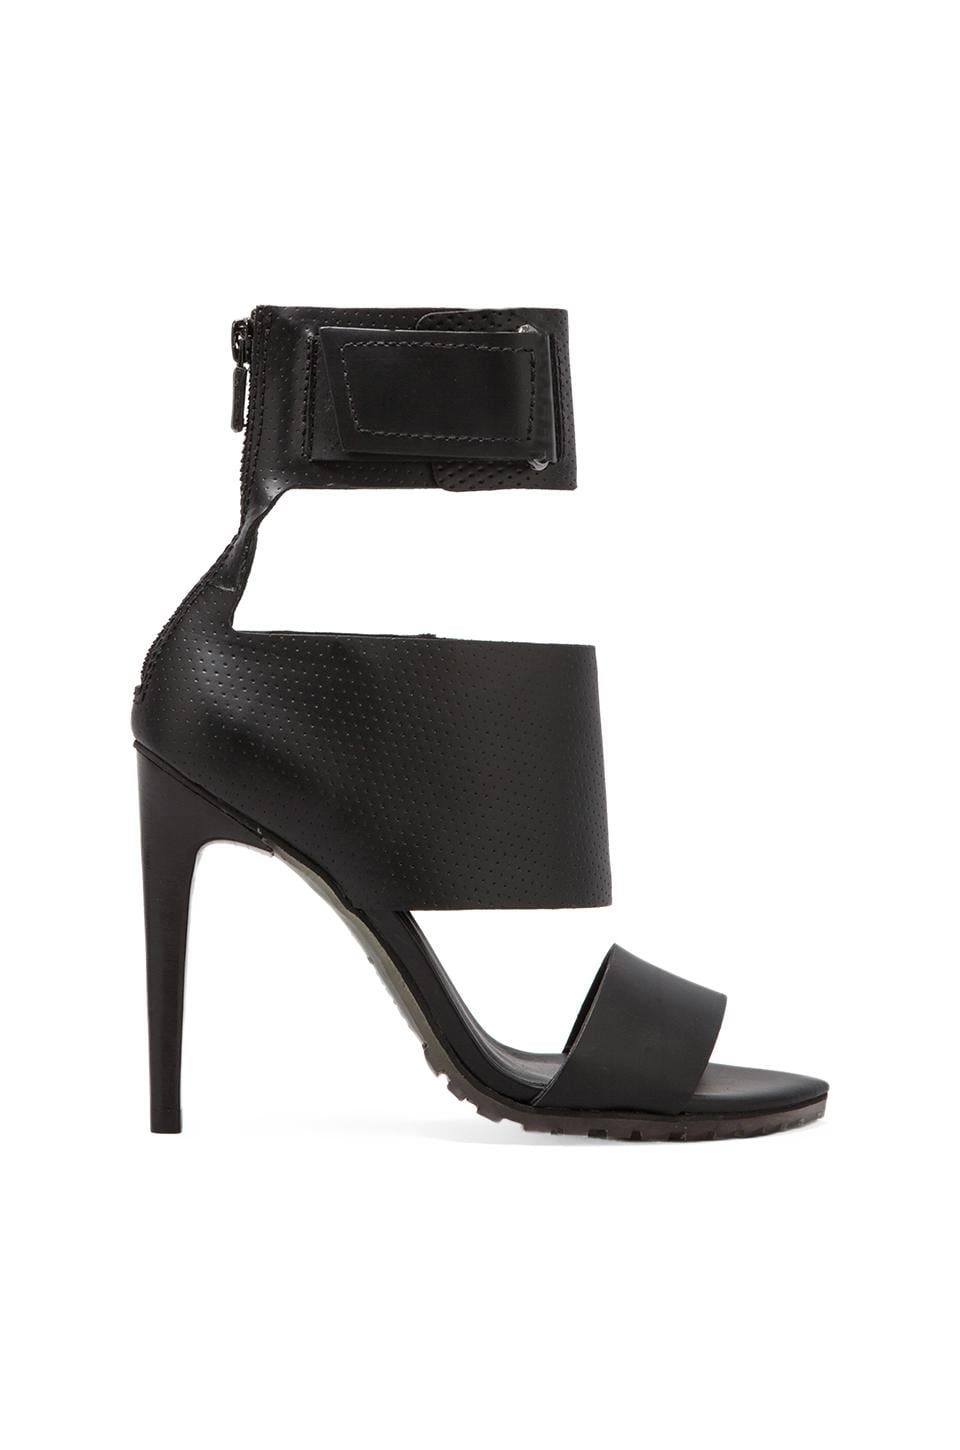 Tibi Evie in Black